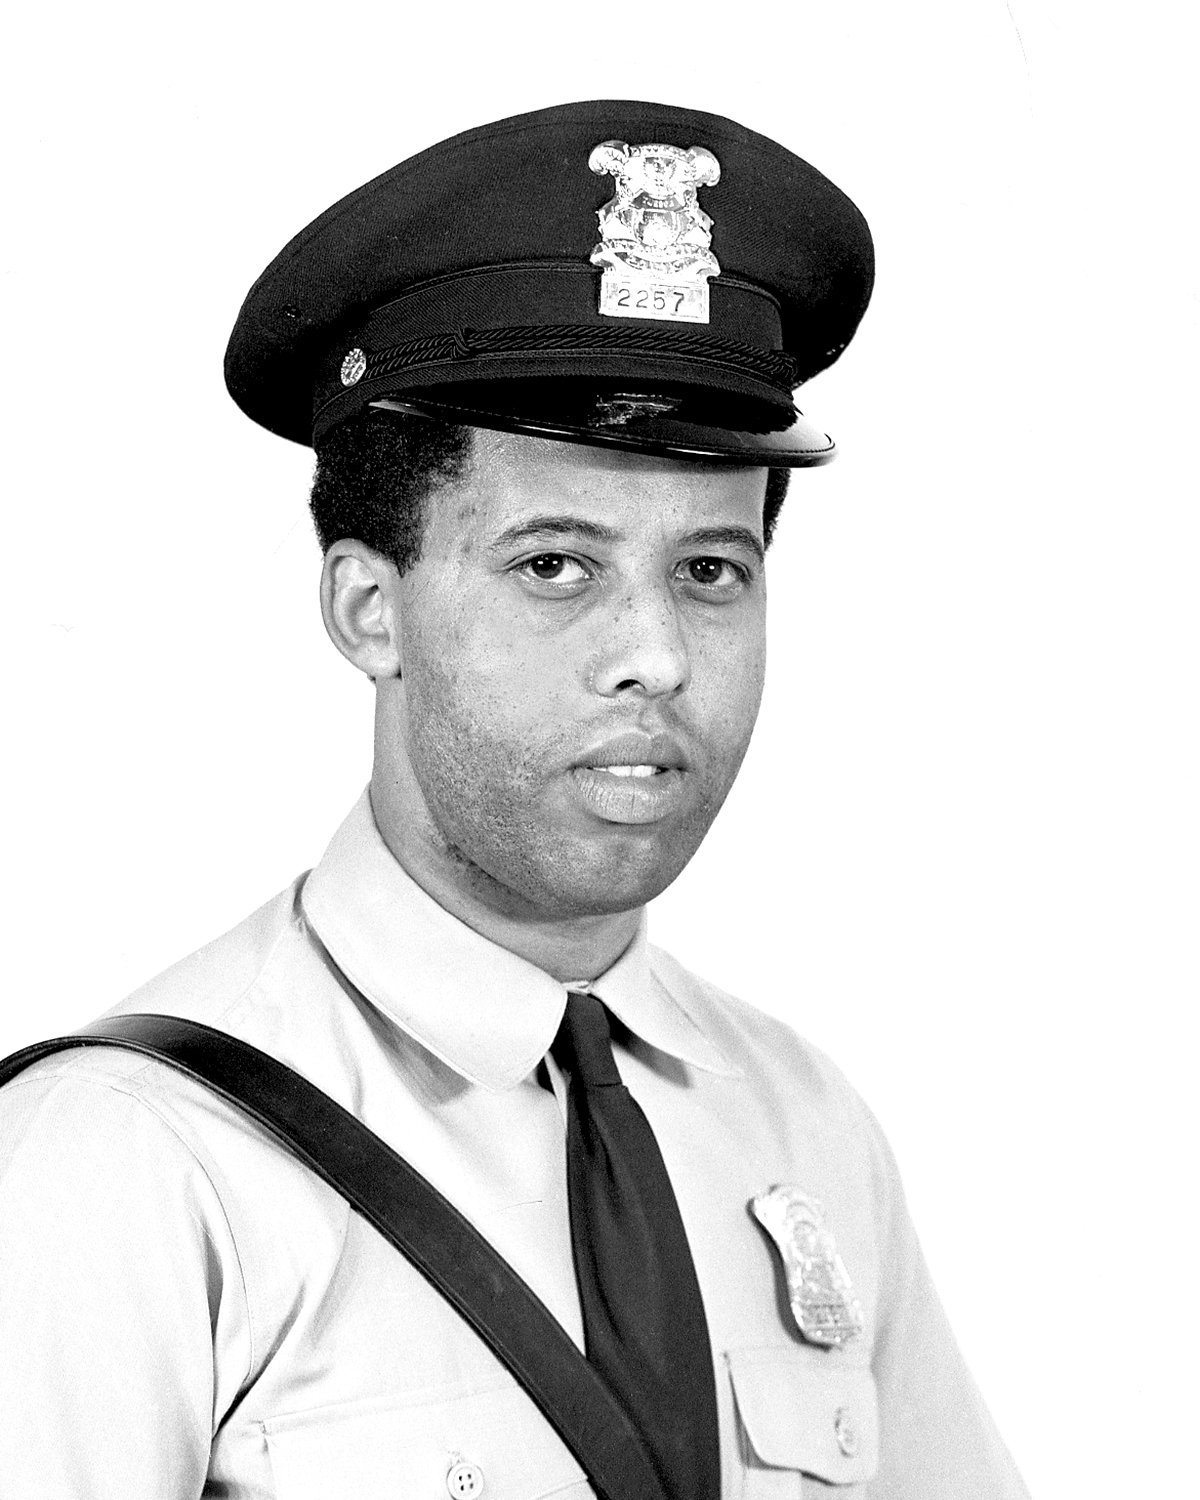 Police Officer Donald O. Kimbrough | Detroit Police Department, Michigan